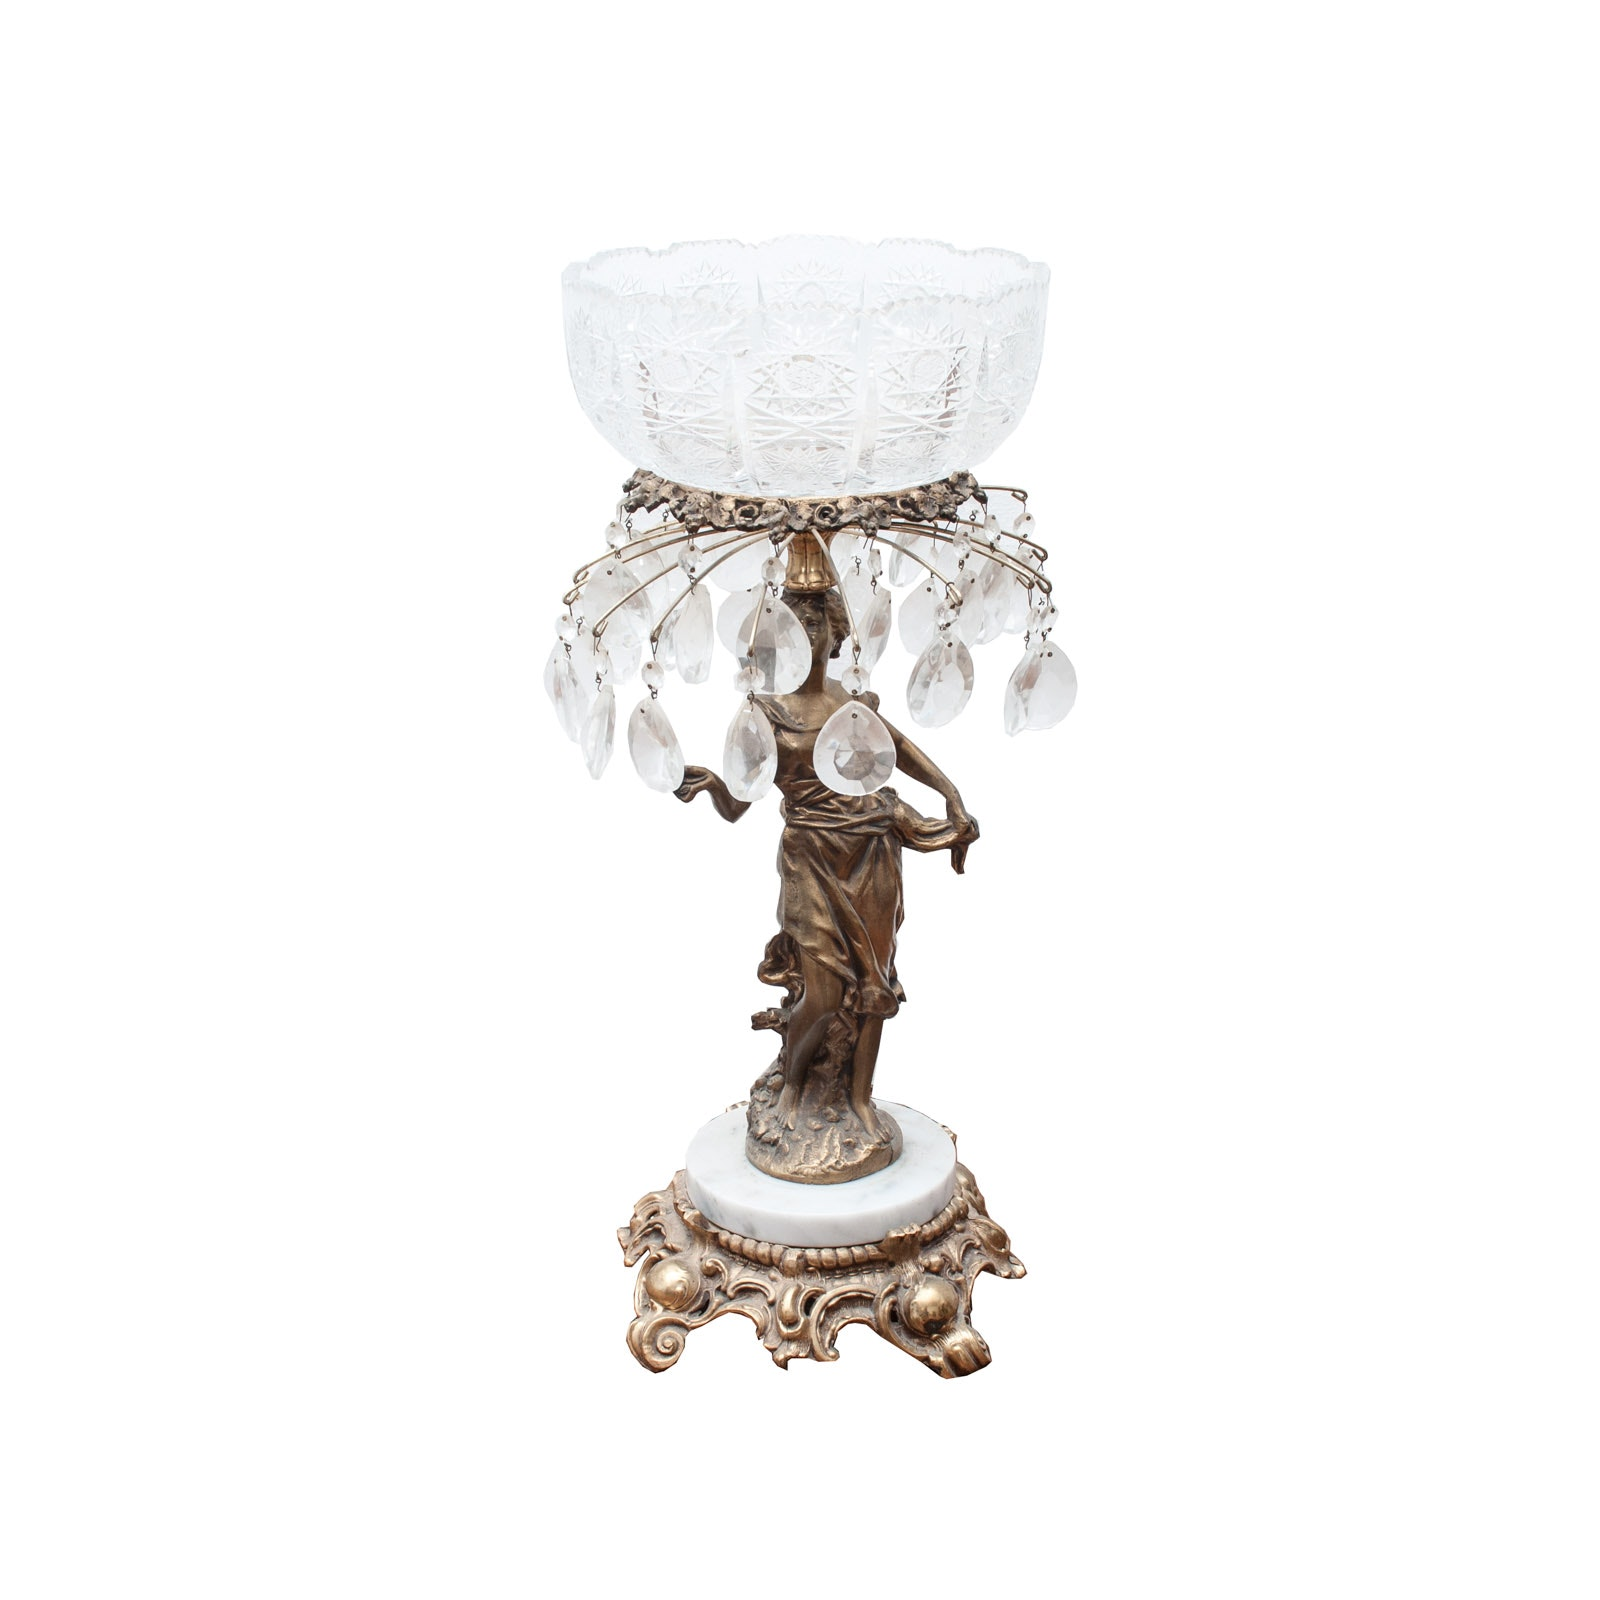 Vintage Figural Brass and Glass Compote with White Marble Base